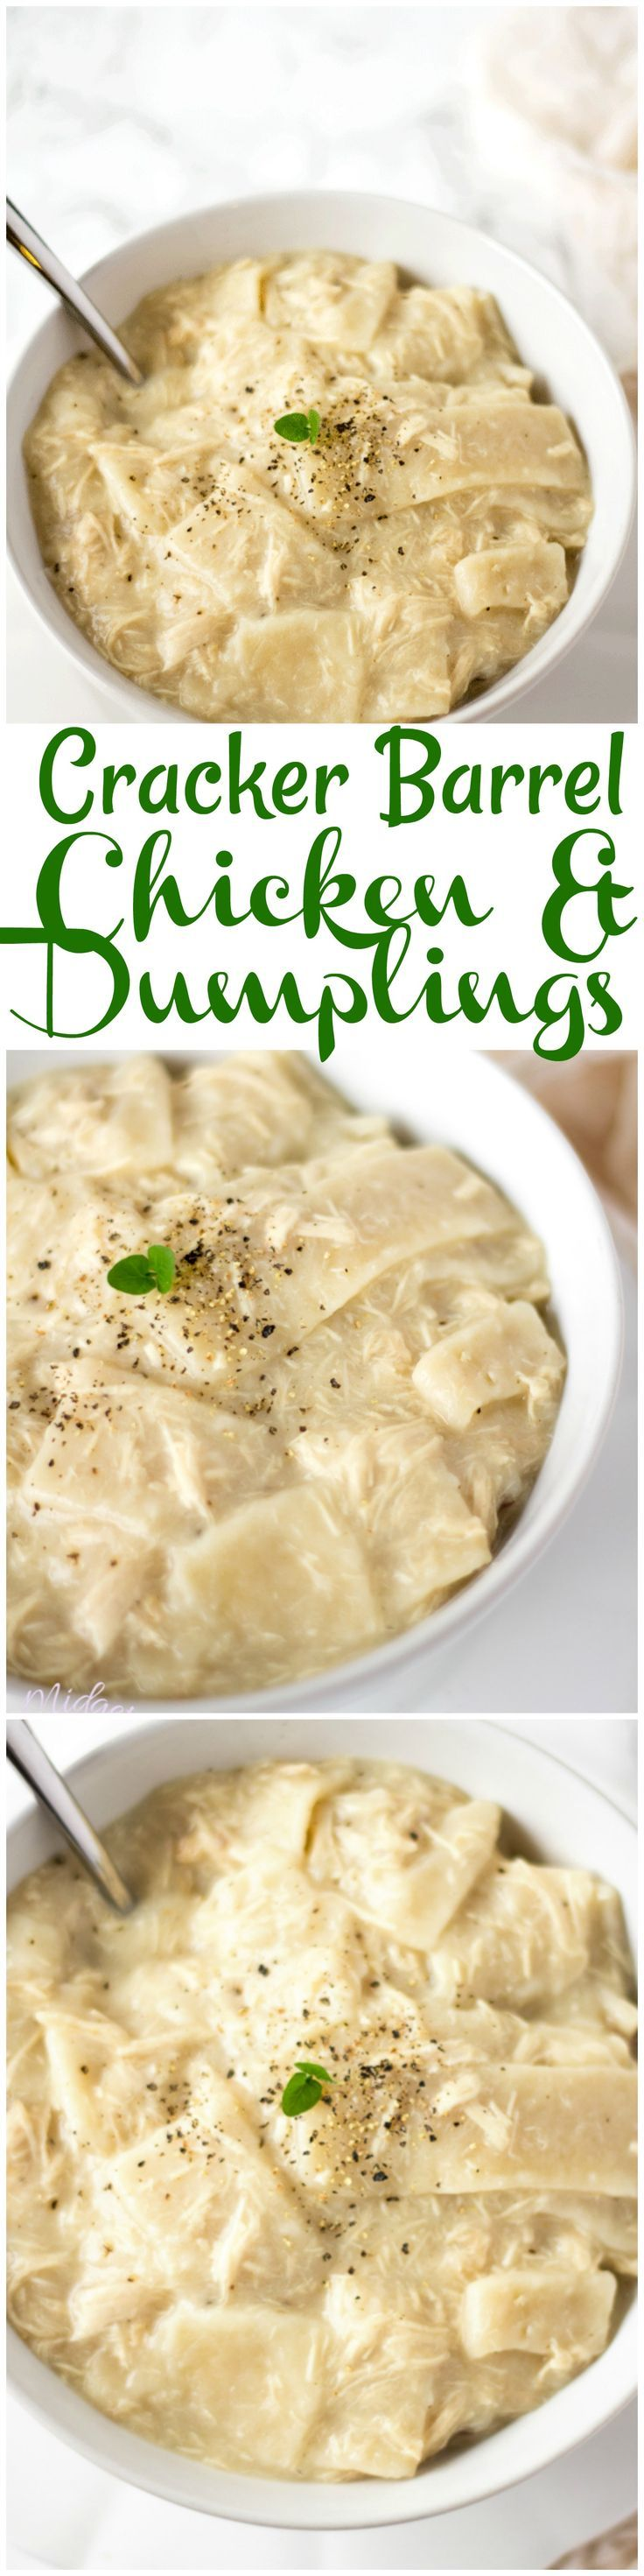 Copycat Cracker Barrel Chicken and Dumplings are just like the ones you will find at Cracker Barrel. Its like a thick chicken soup and AMAZING! Easy to follow Chicken and Dumplings recipe.